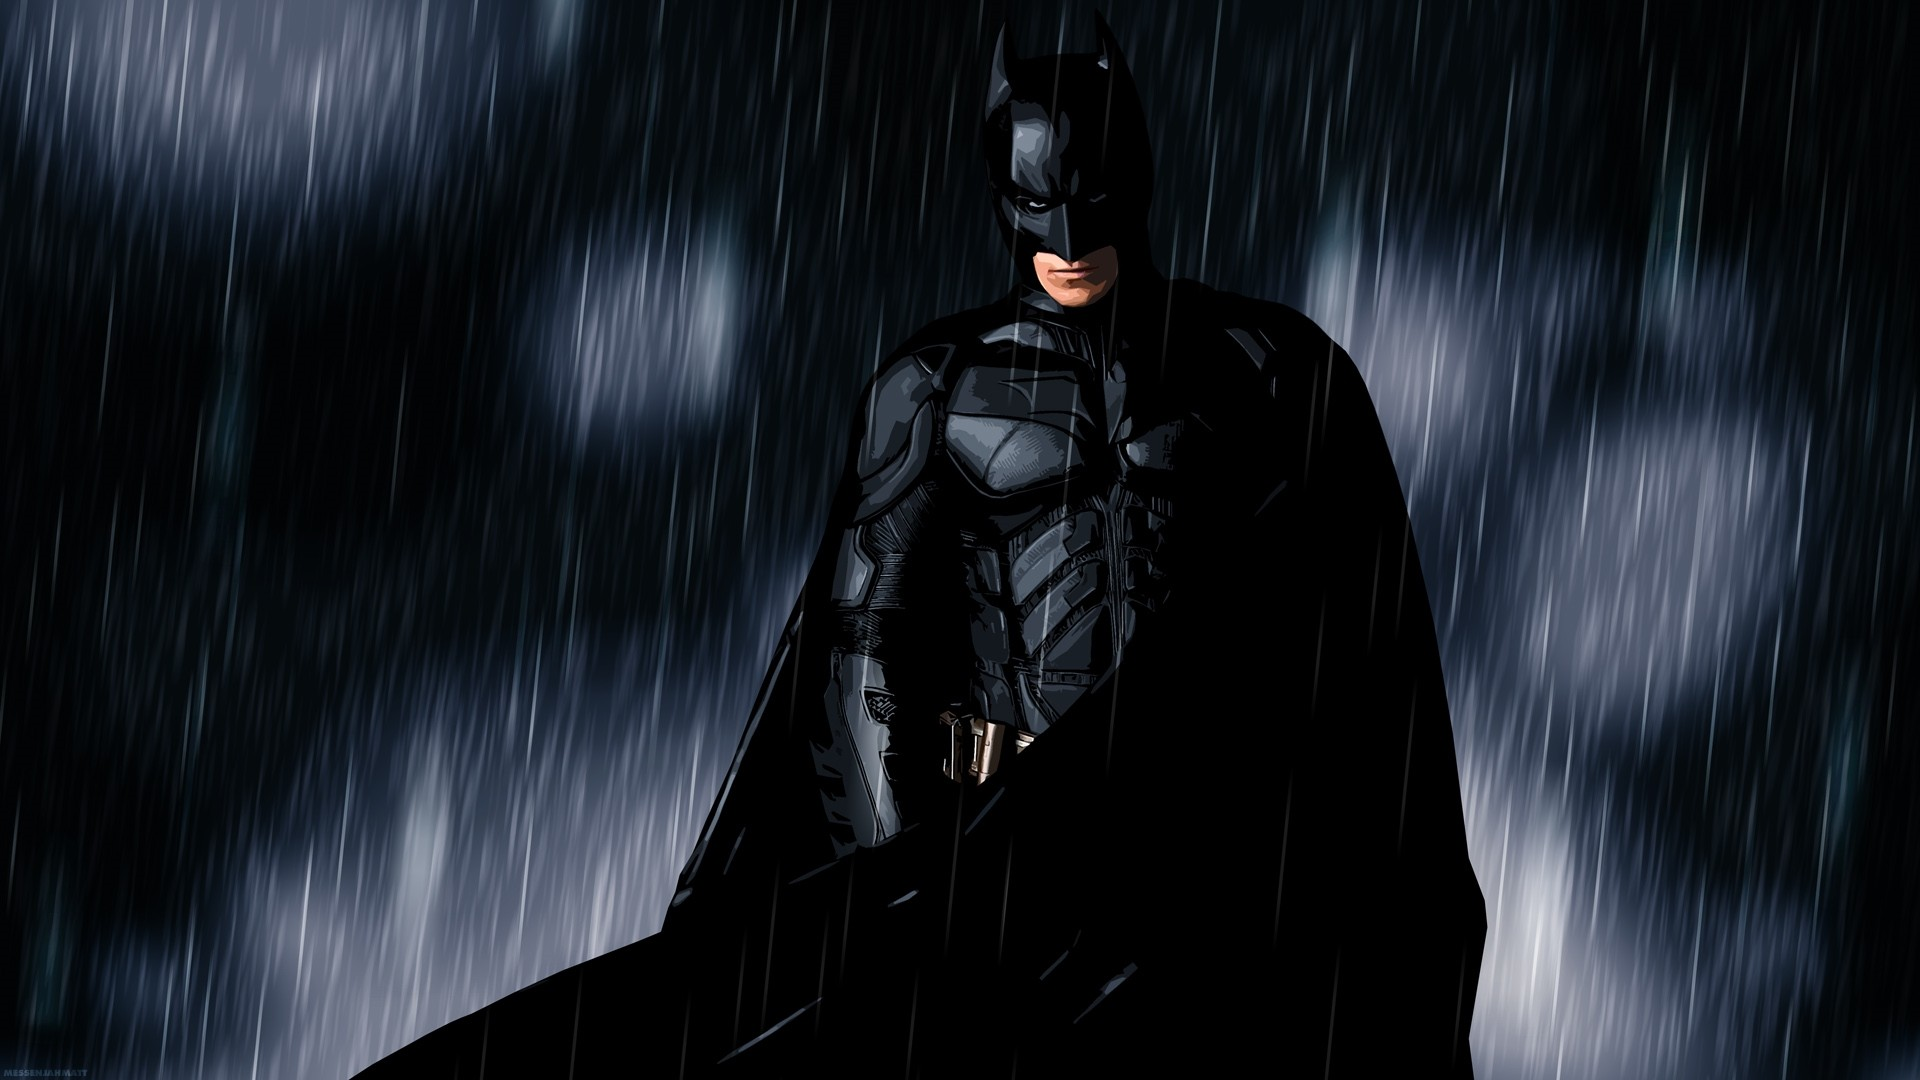 Dark Knight Wallpapers 19 Images Wallpaperboat